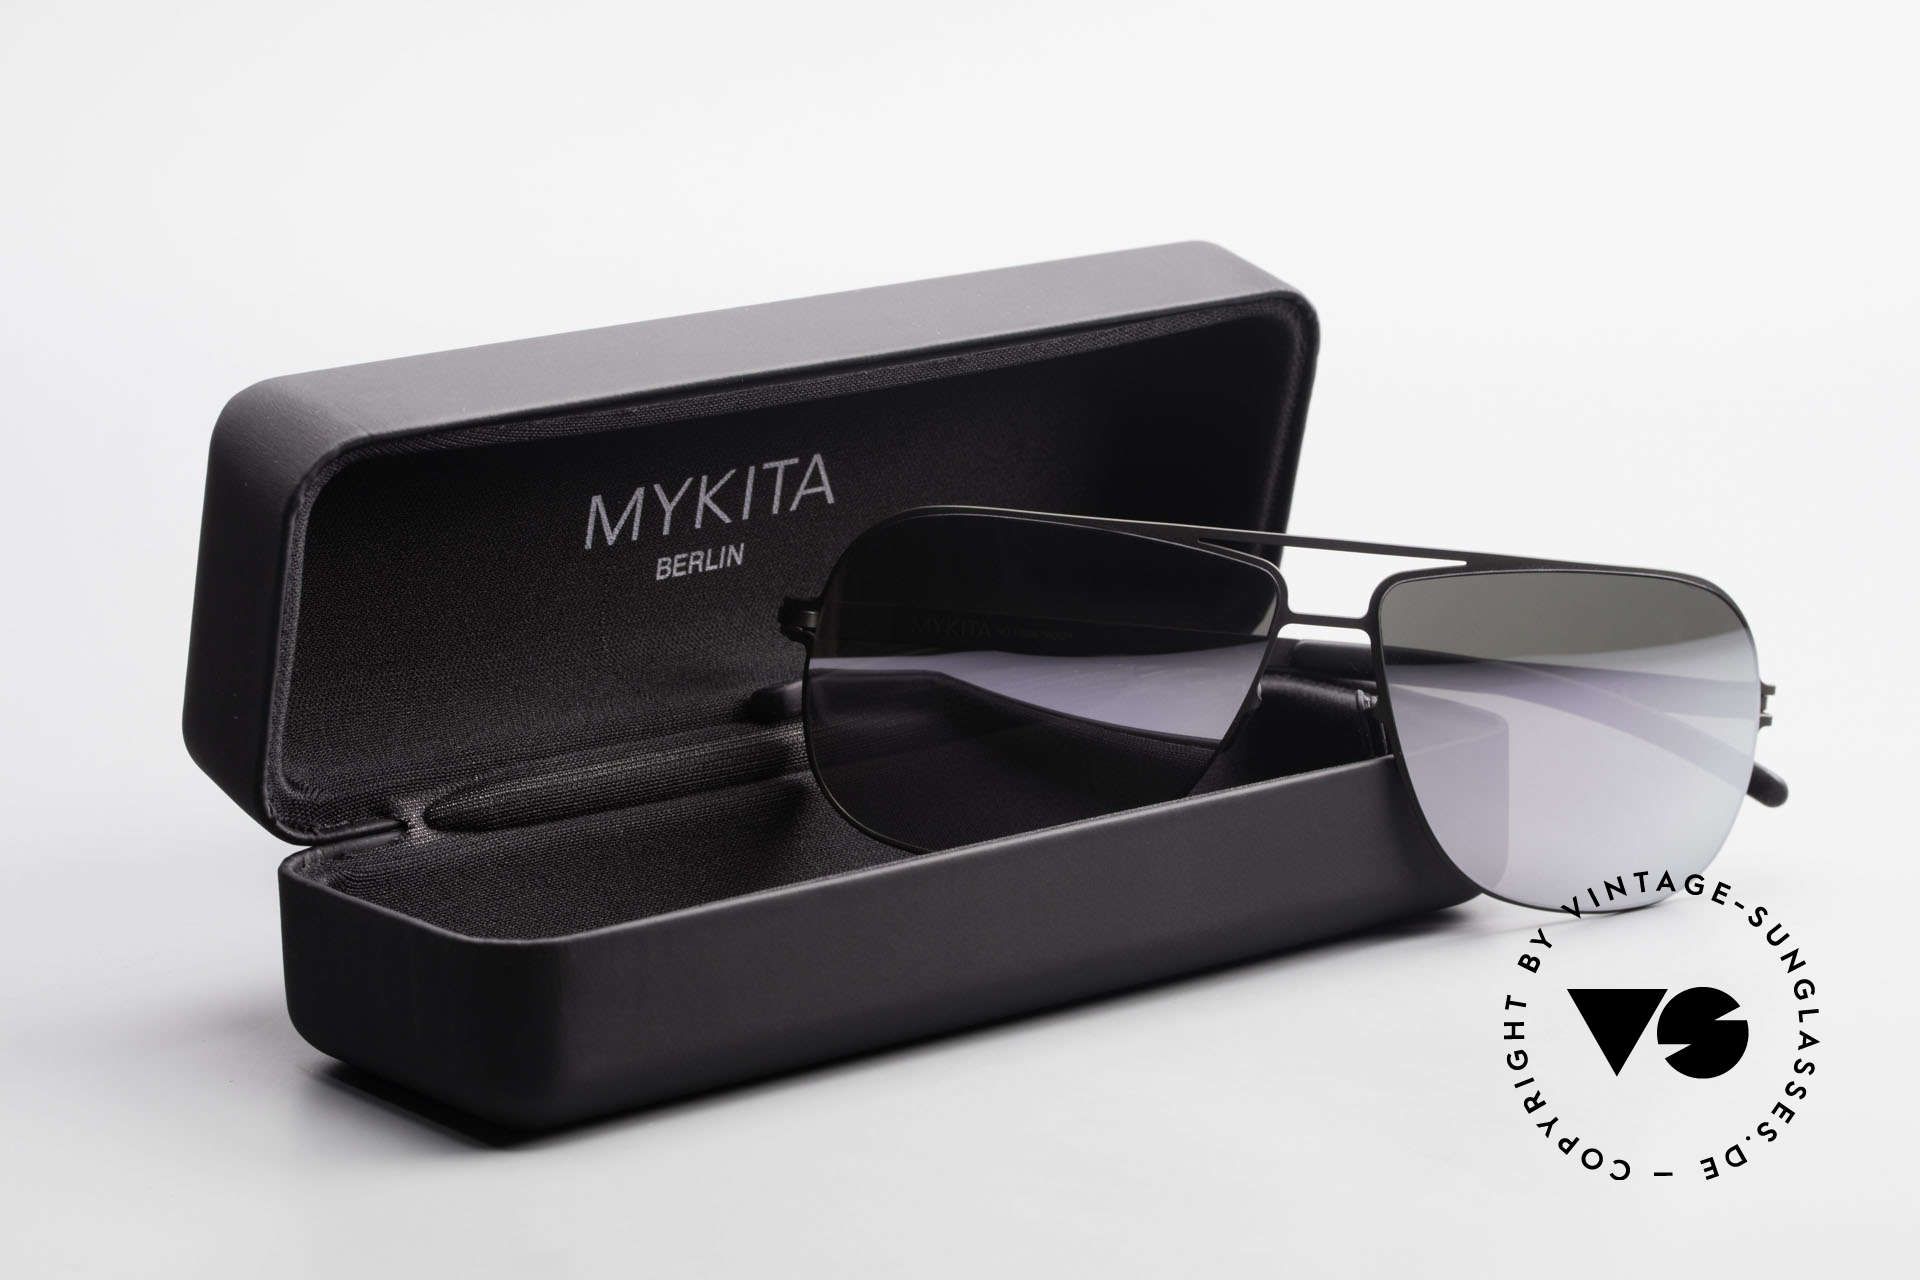 Mykita Rolf Mirrored Celebrity Sunglasses, Size: medium, Made for Men and Women